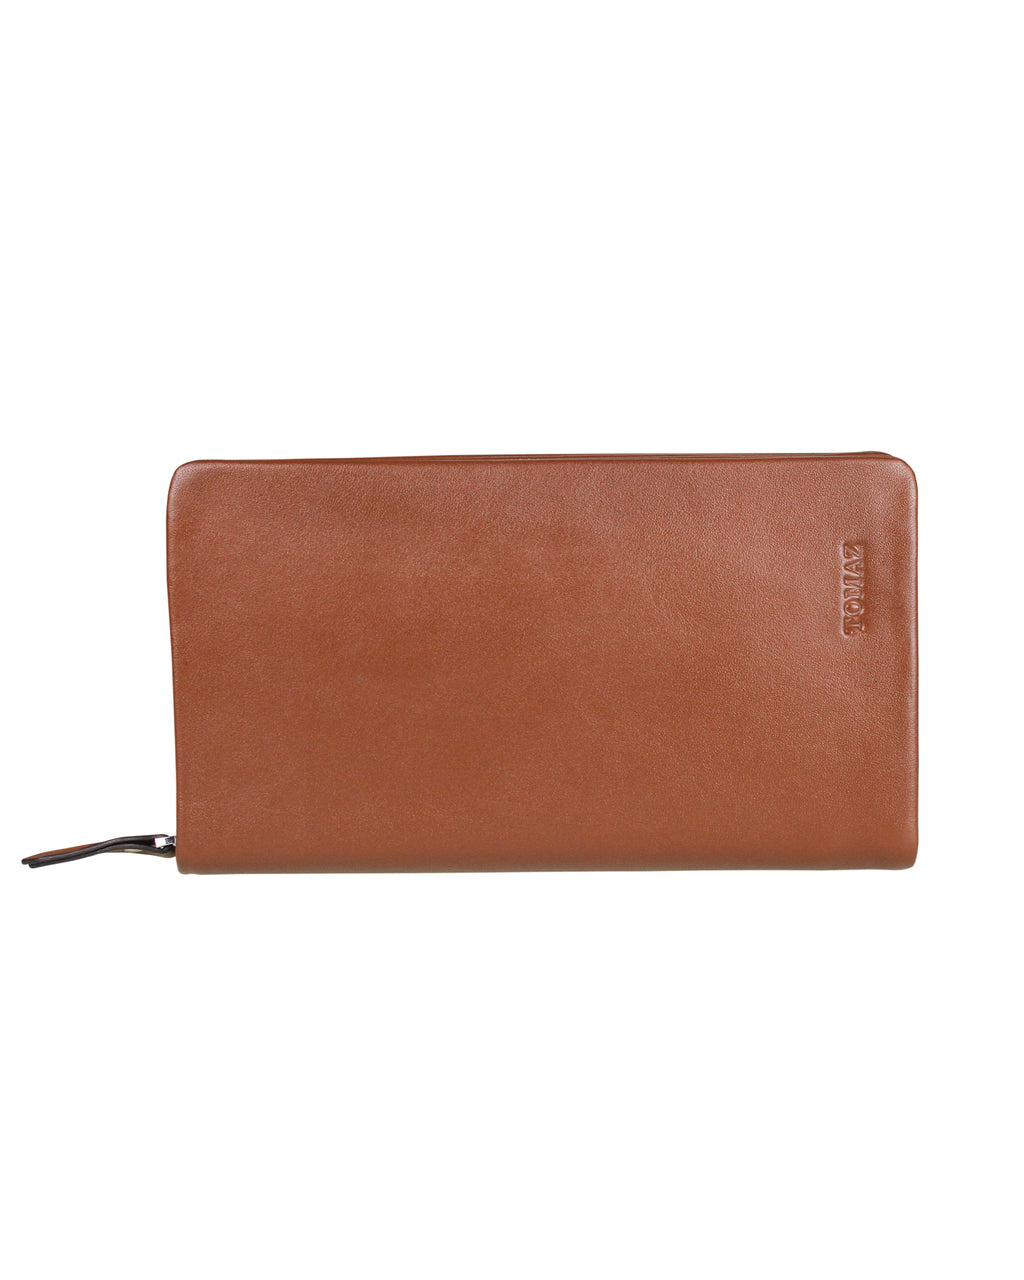 Tomaz NT09 Leather Clutch (Tan)